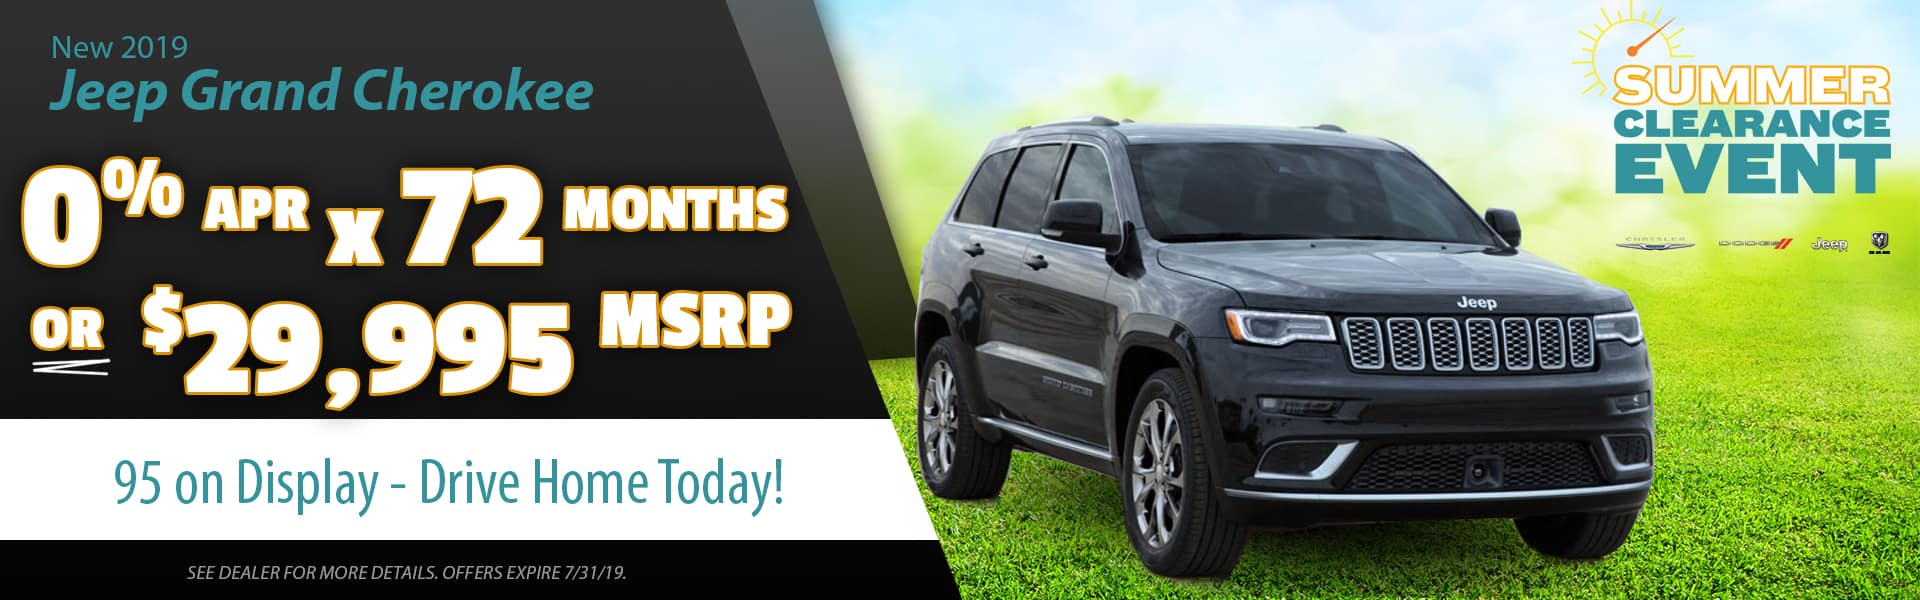 Grand Cherokee offers